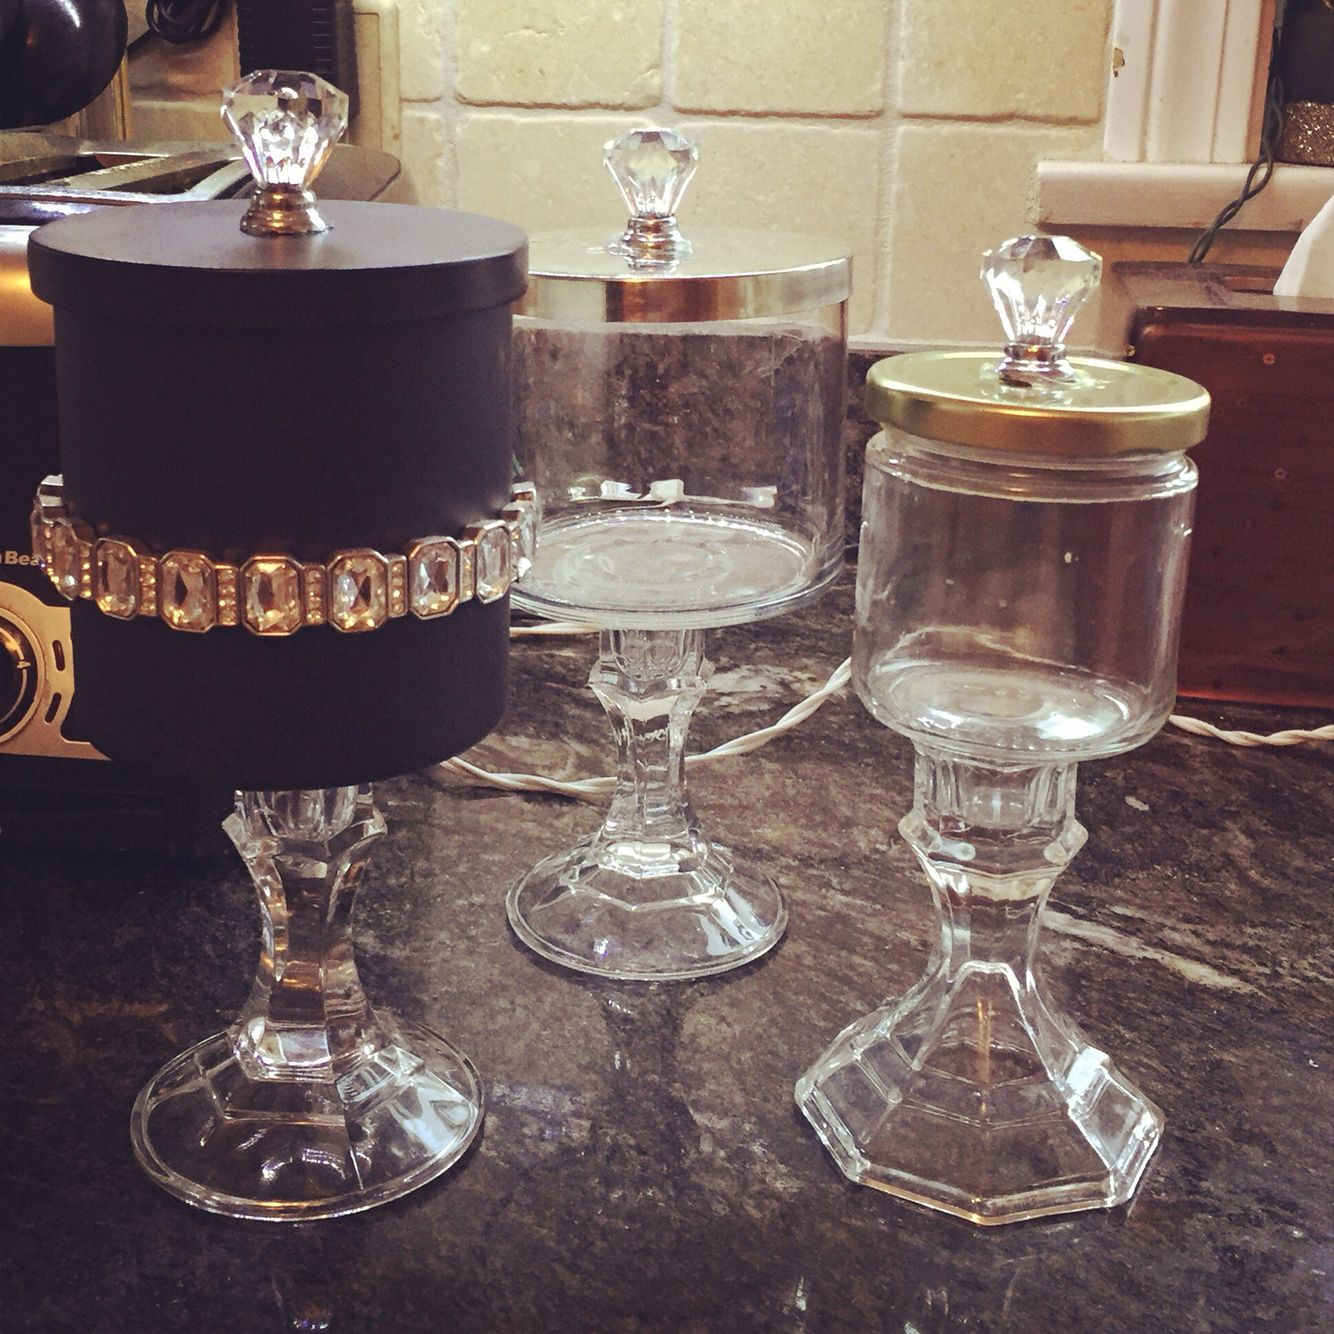 Diy apothecary jars. Empty candle jars. Dollar tree candle sticks and acrylic drawer pulls